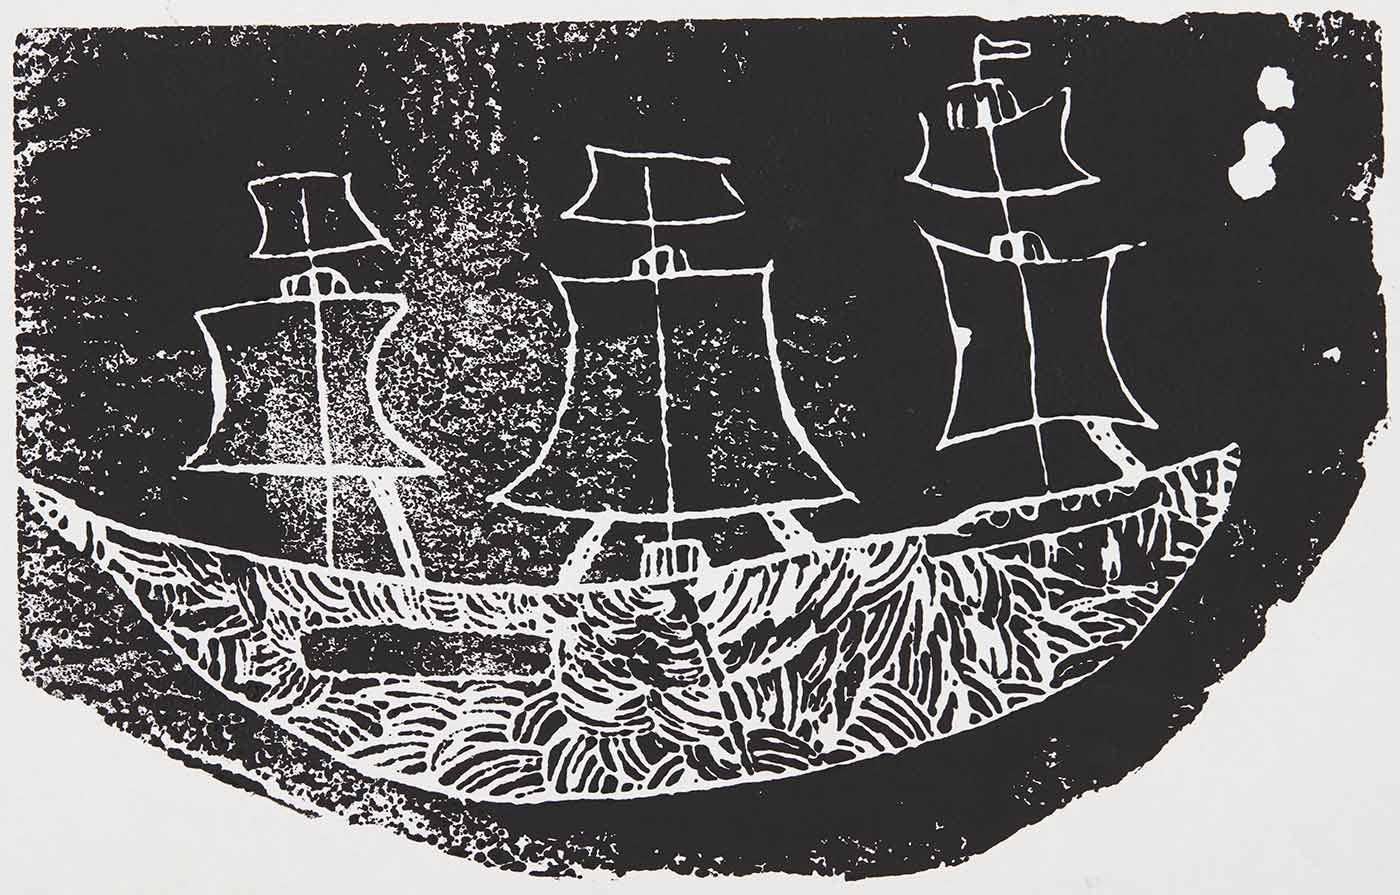 A black print on white cardboard featuring a ship with curve concentric patterns across the hull of the ship. The print is signed and titled 'Tara Green / Coolamon Endeavour'. - click to view larger image